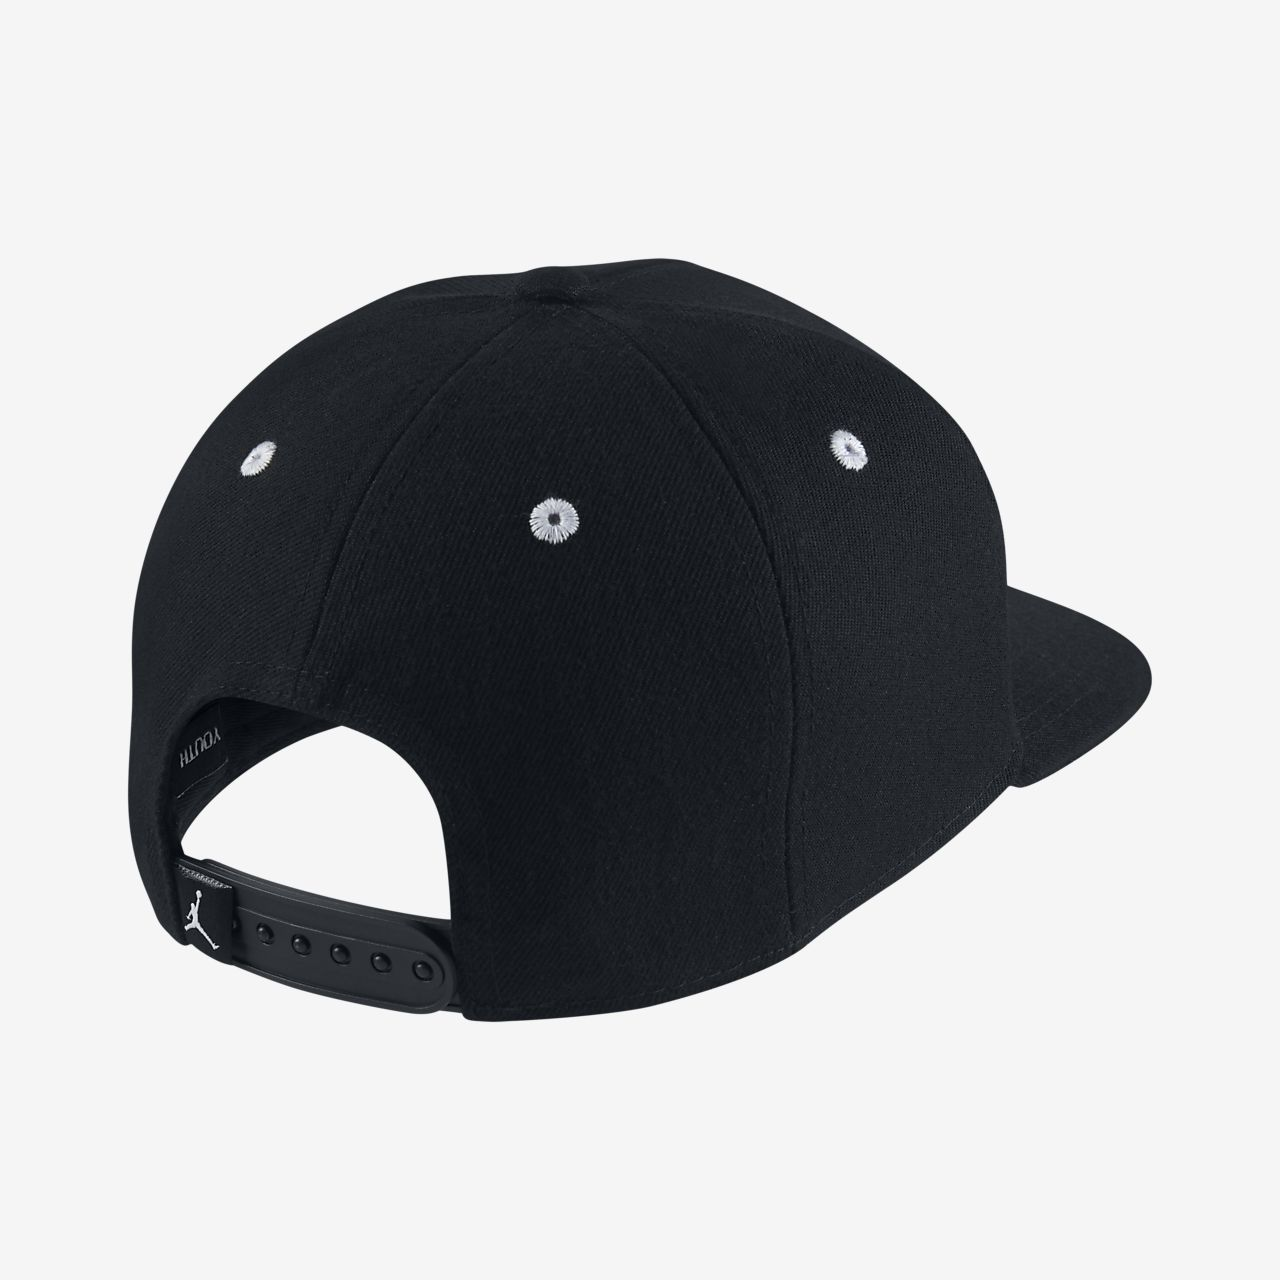 9b2ae42c780d2 Jordan Jumpman Air Gorra regulable - Niño a. Nike.com ES